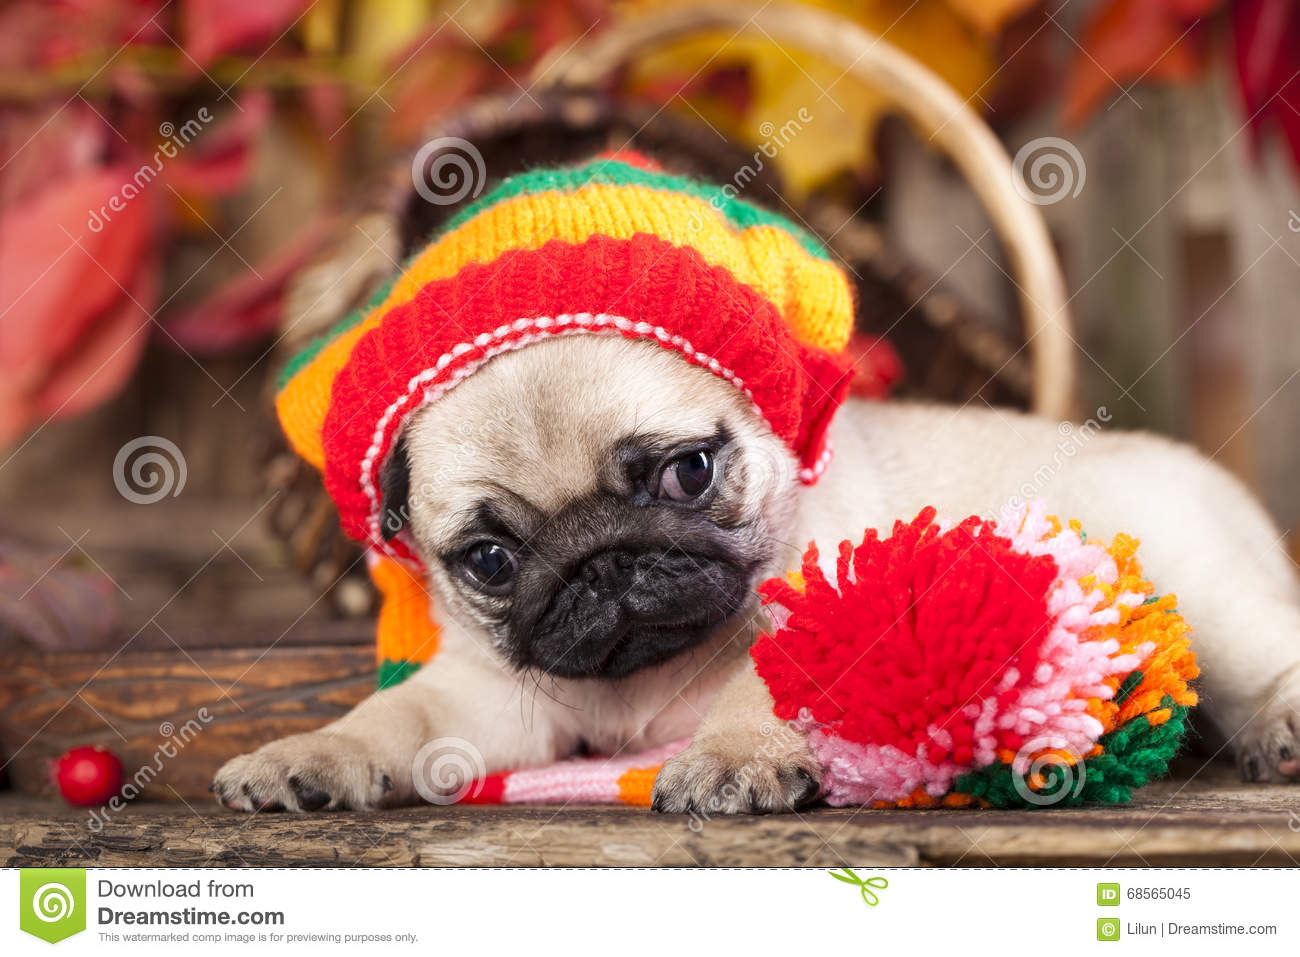 c14f5af449a Puppy Wearing The Knitted Hat Stock Image - Image of cartoon